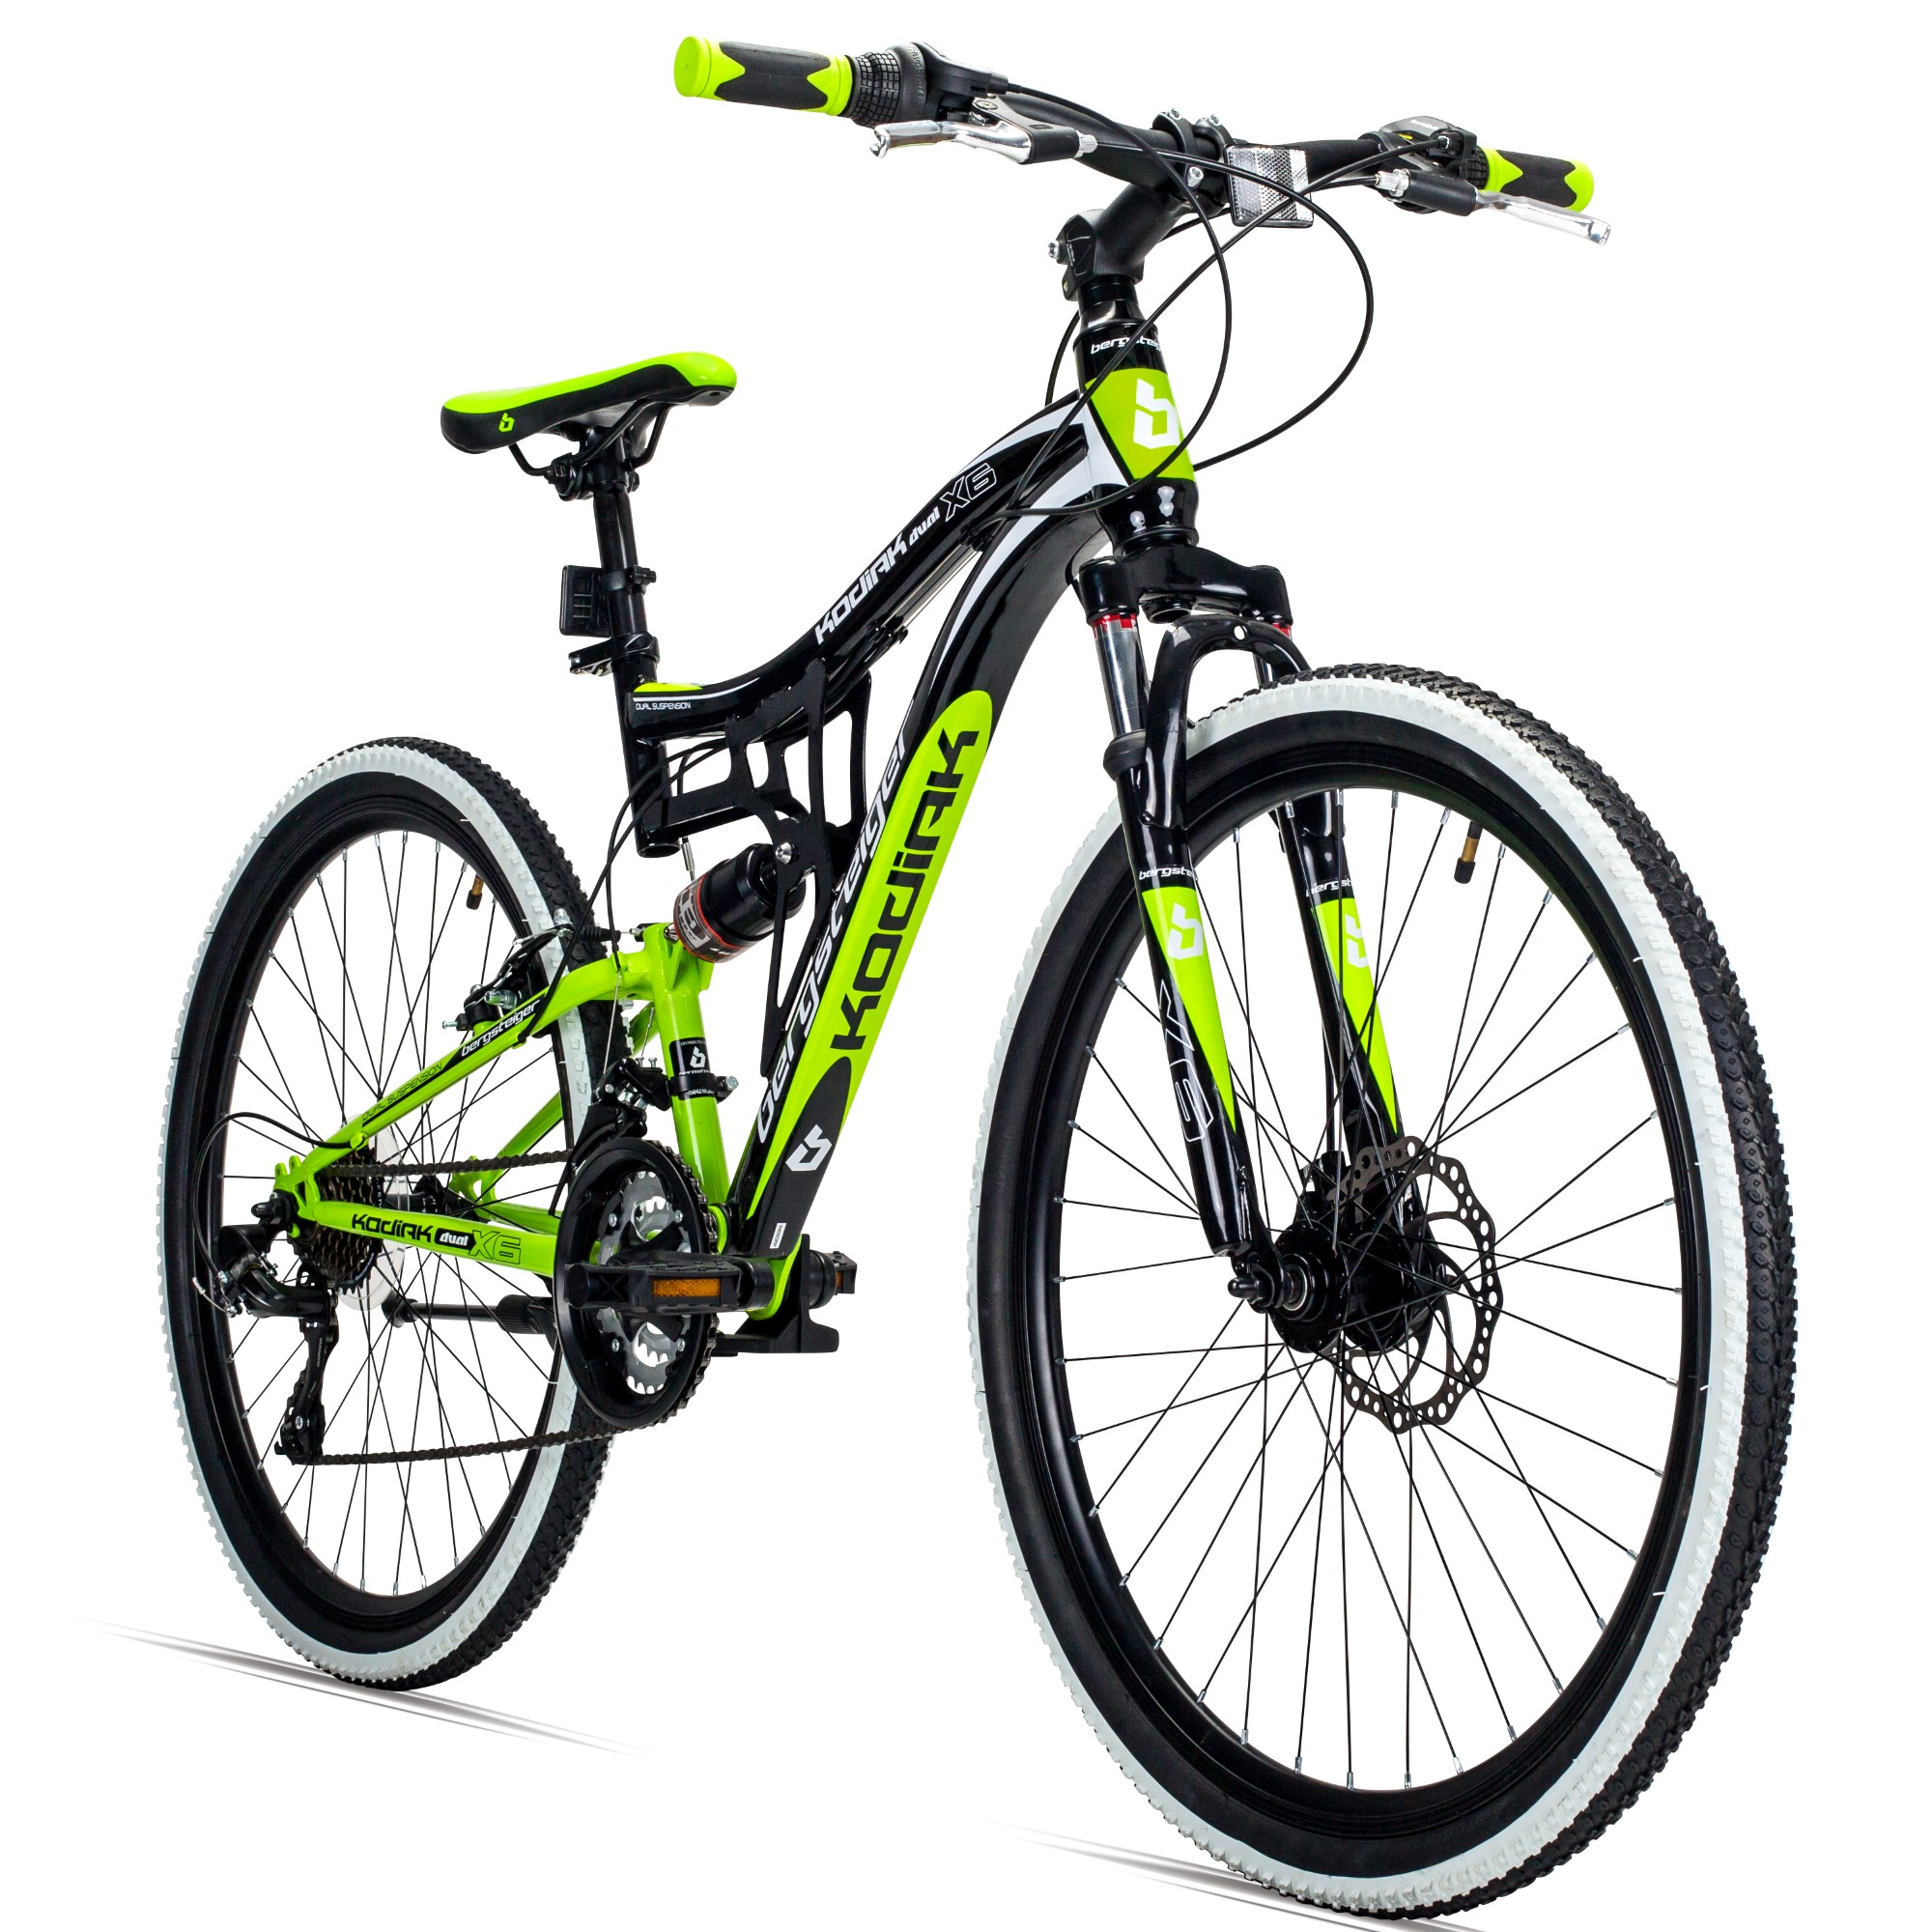 26 mountainbike kodiak bergsteiger fahrr der mountainbikes citybikes kinderfahrr der bmx. Black Bedroom Furniture Sets. Home Design Ideas